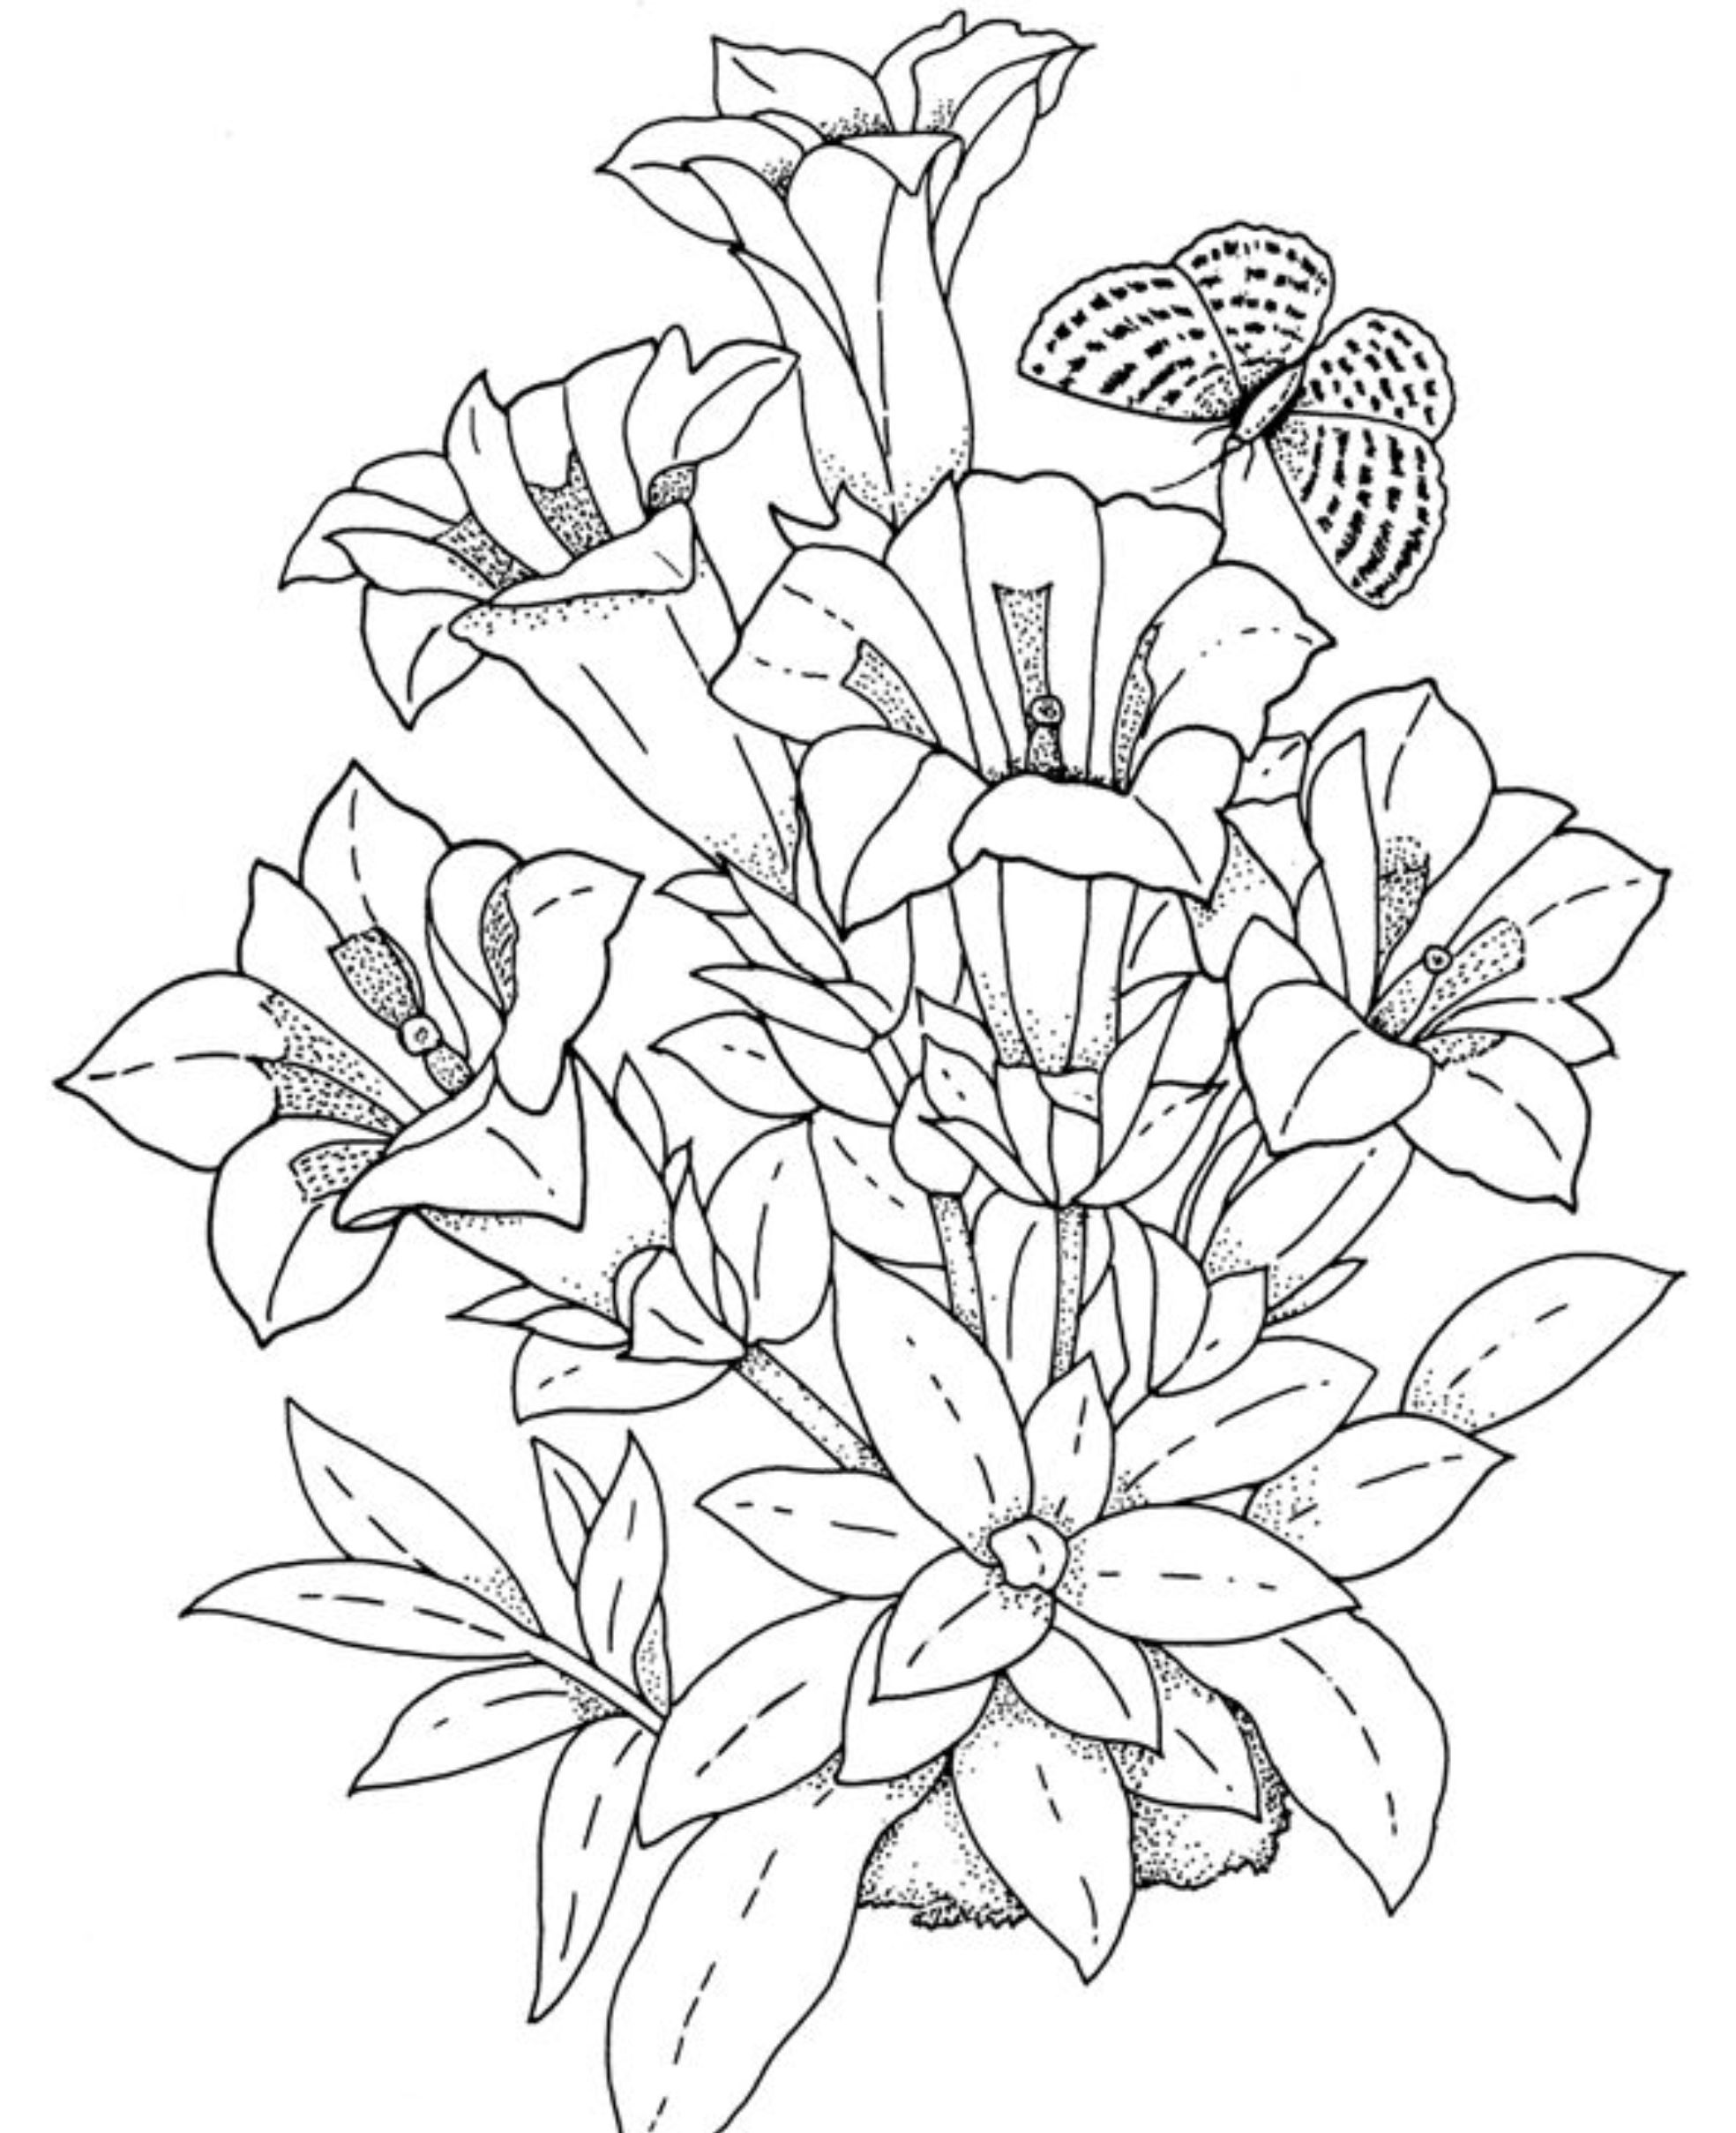 coloring pages for adults flowers bouquet of morning flowers flowers adult coloring pages flowers coloring adults pages for